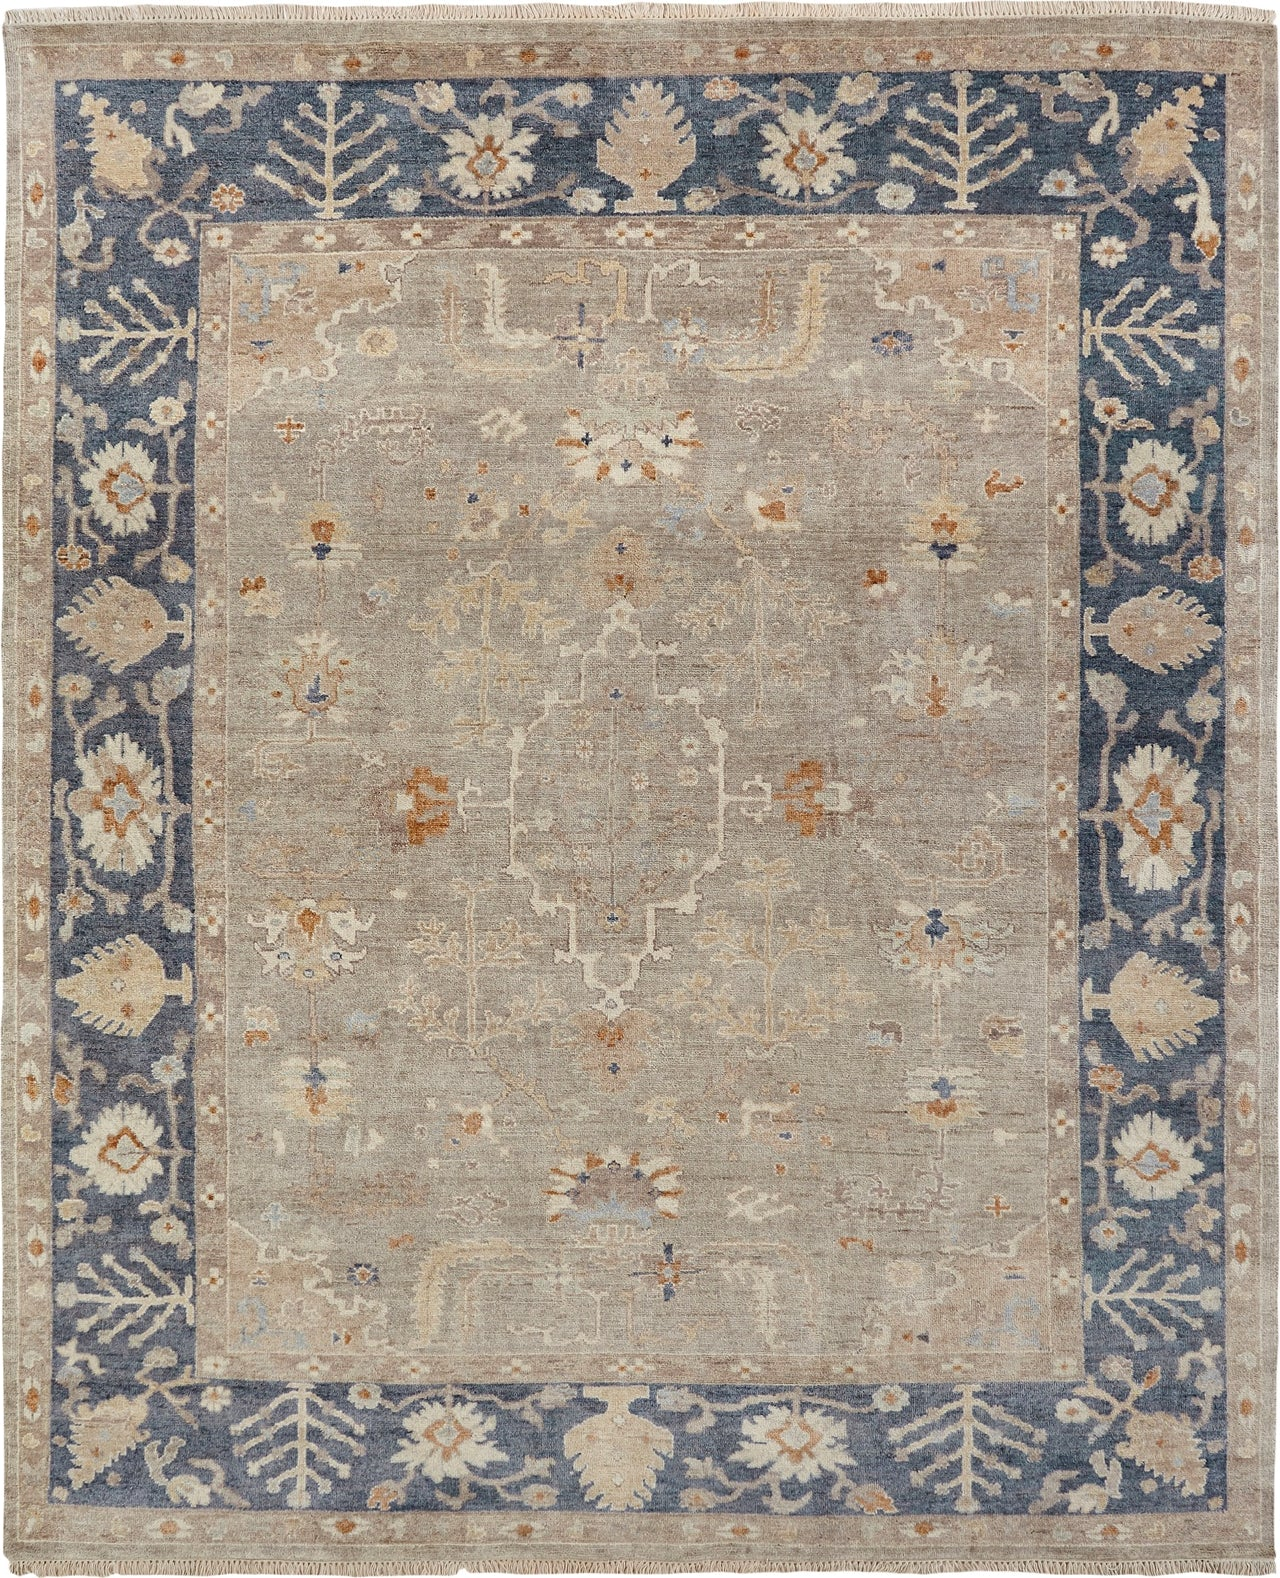 Ancient Boundaries Omni Omn 474 Grey Navy Area Rug Incredible Rugs And Decor